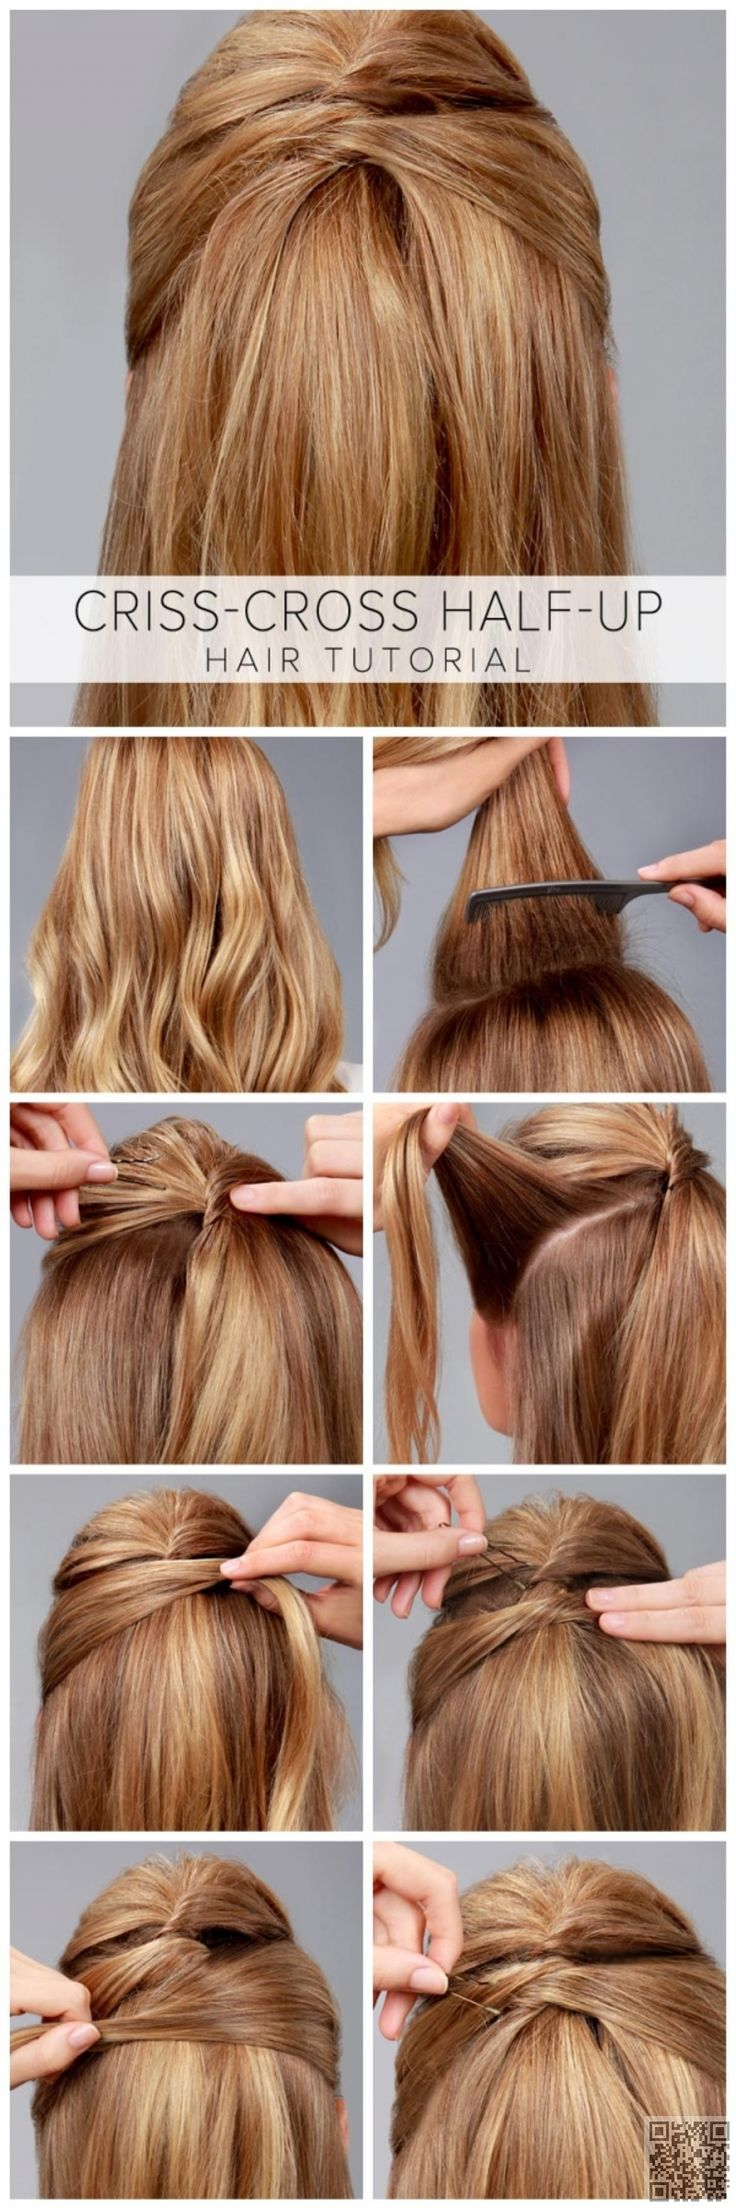 7. Criss-Cross Half-up - So Sweet for Summer! Try These 23 Half up, Half down Hair Styles!